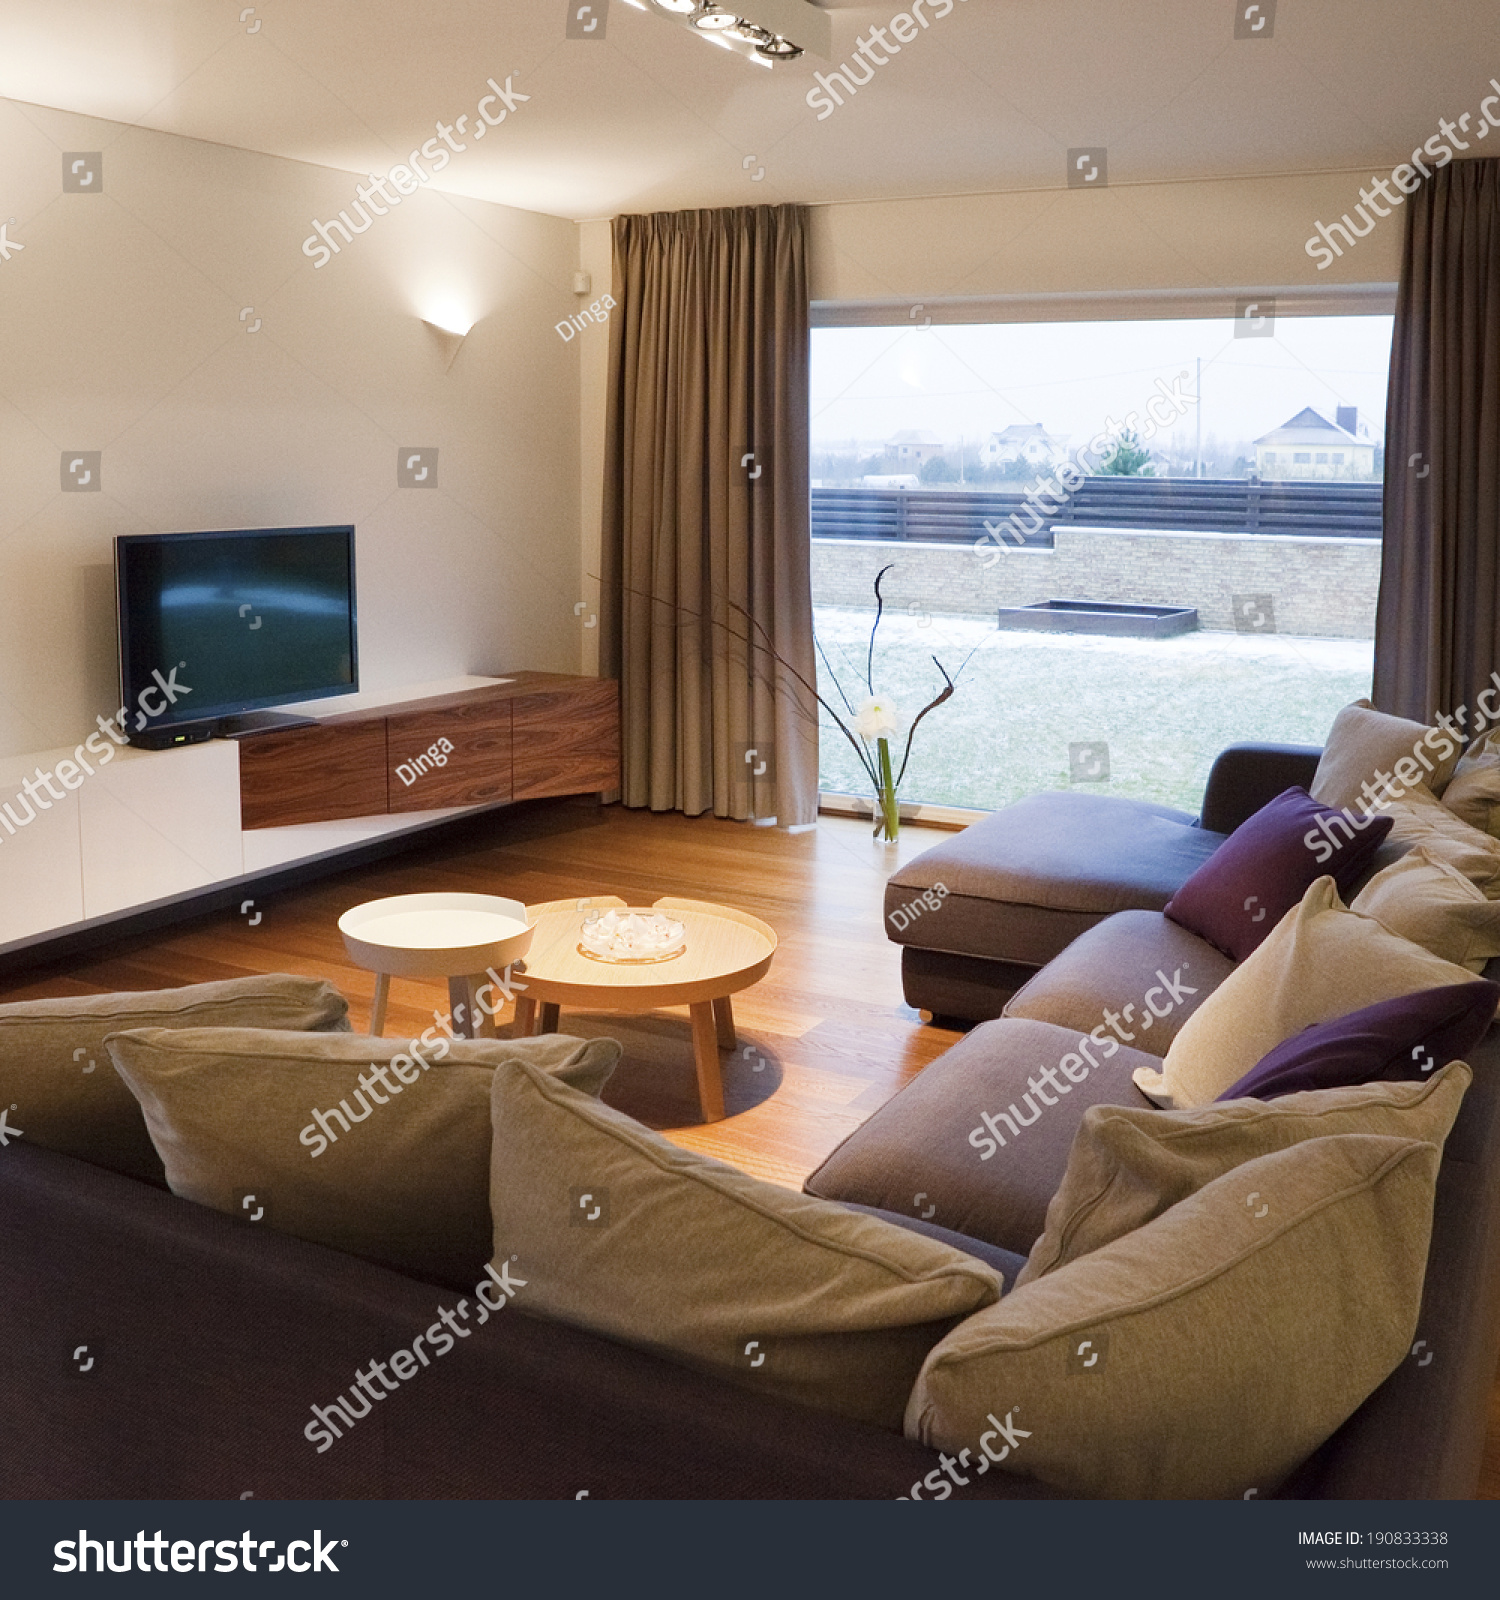 Living Room Tv Set Living Room Tv Set Living Room Ideas Living Room Tv Set Interior